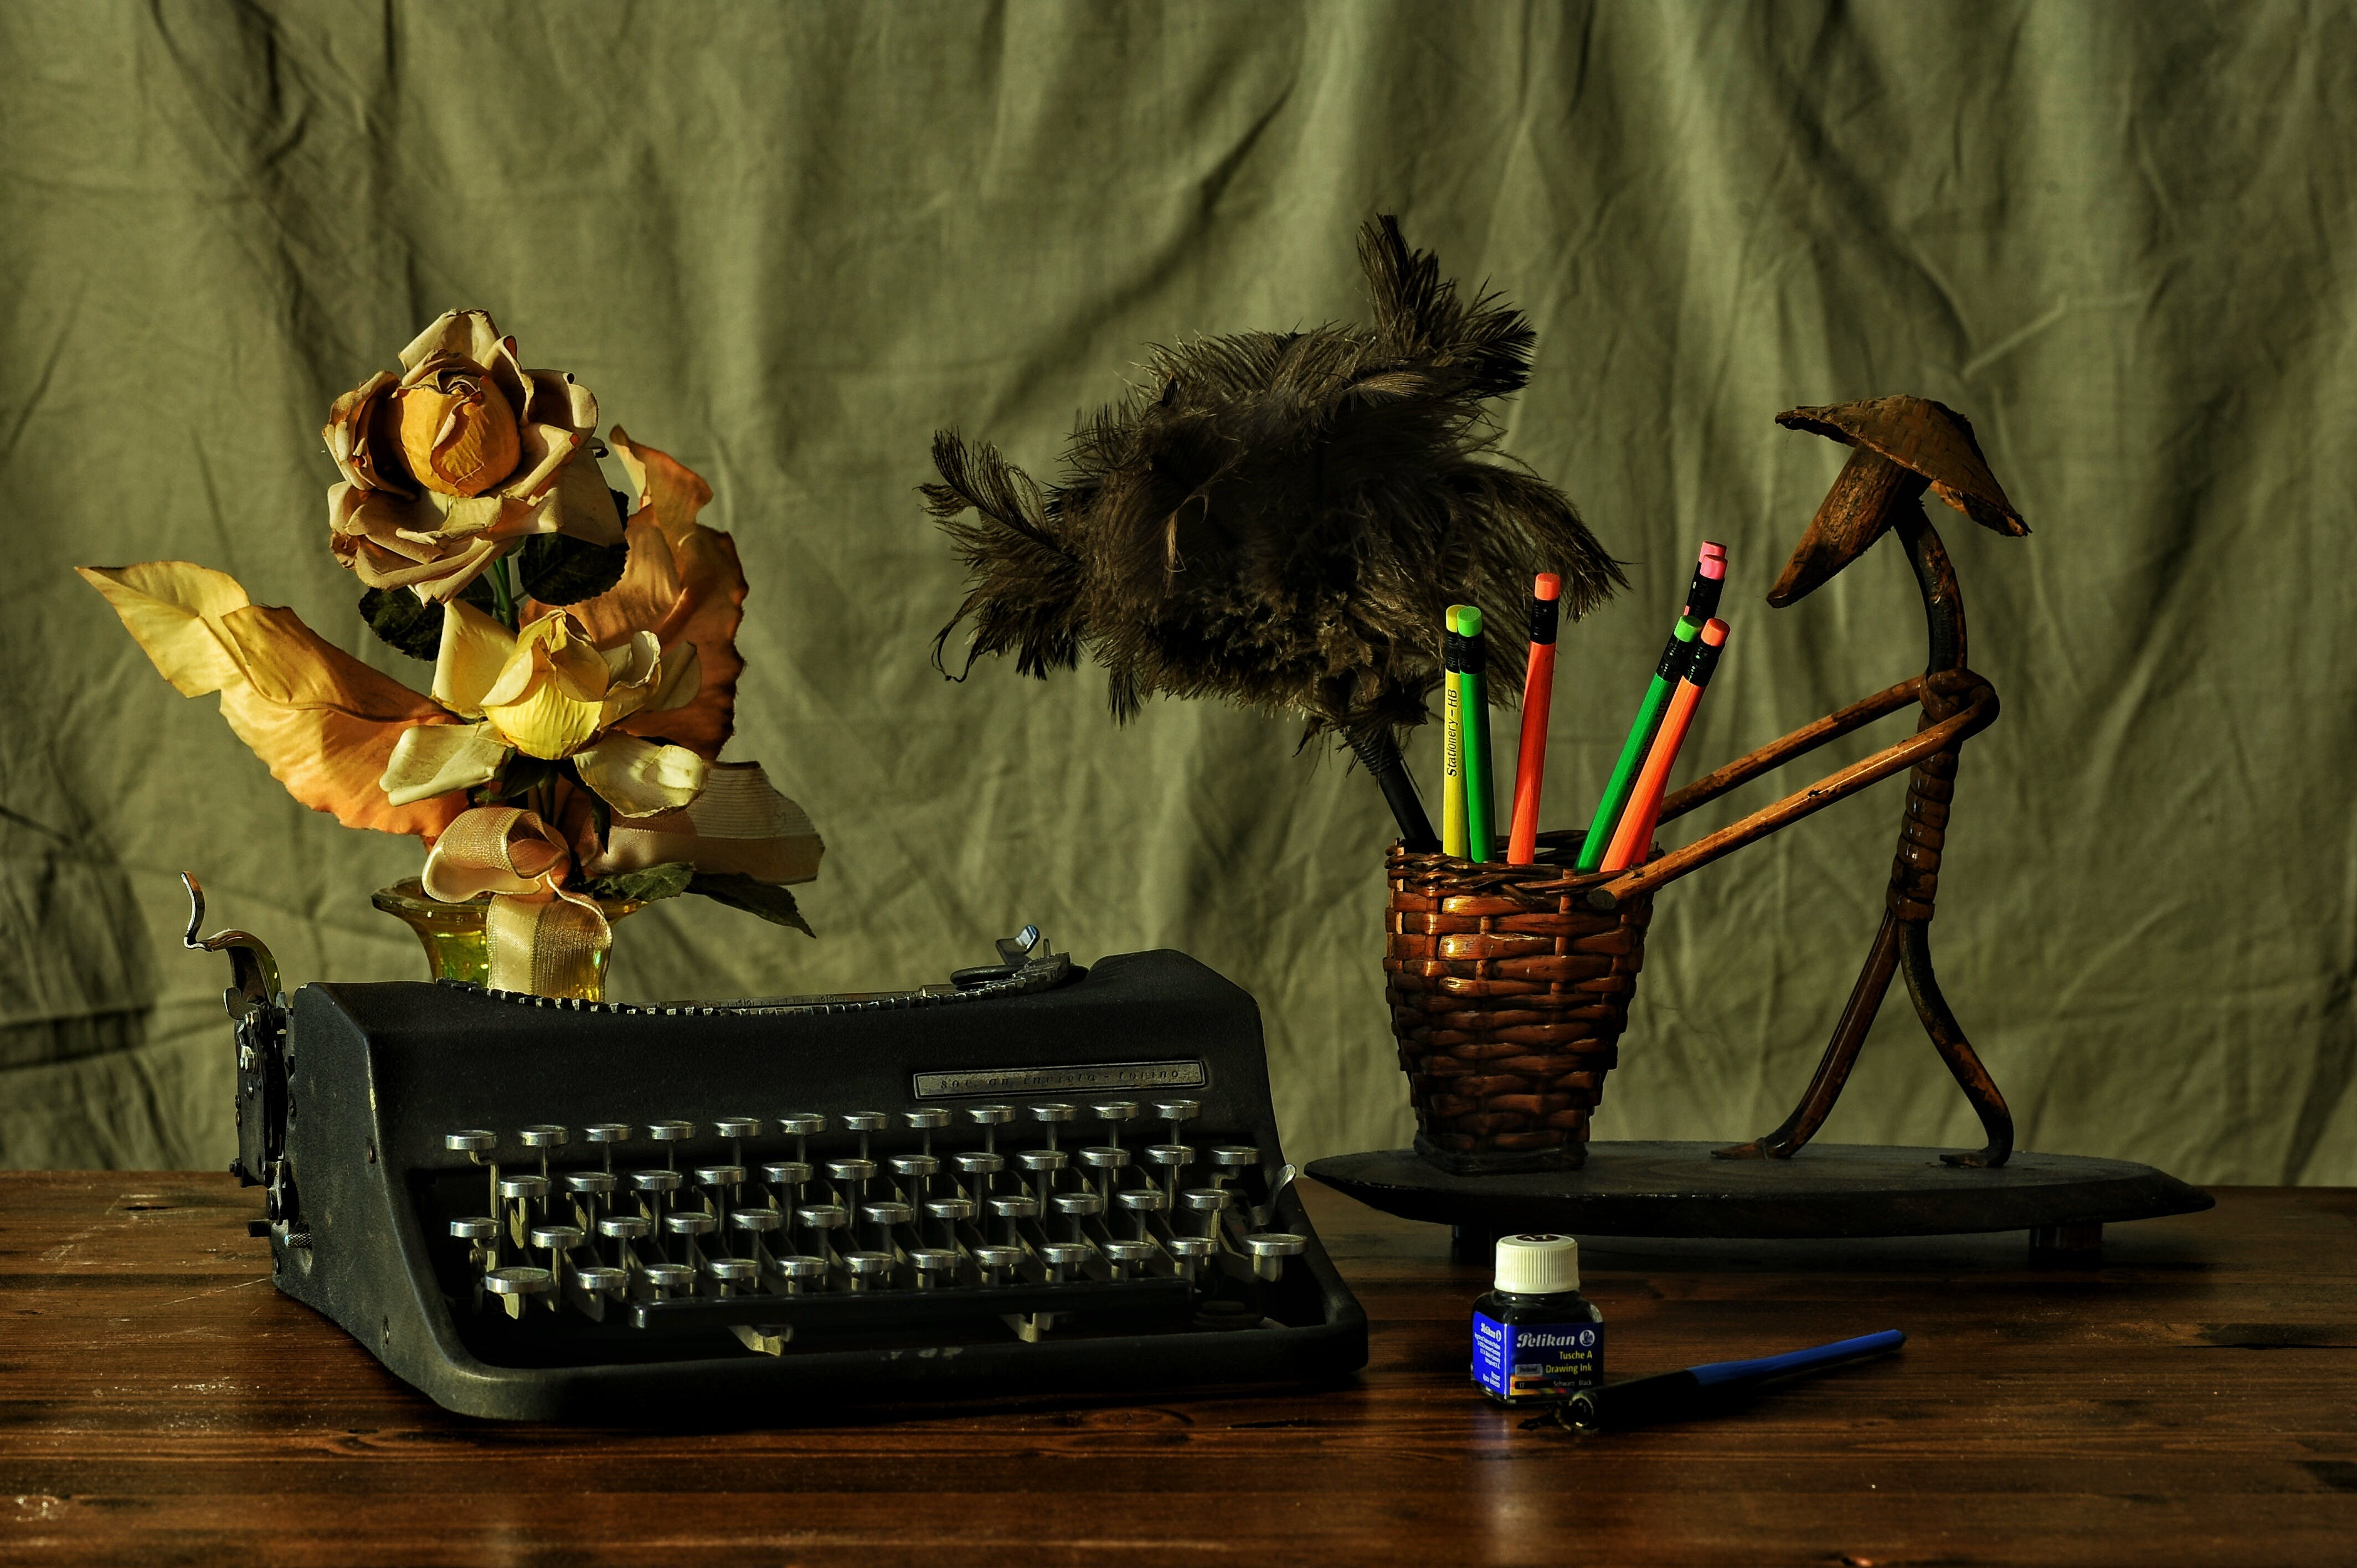 Black Typwriter Near Brown Wicker Pencil Cup